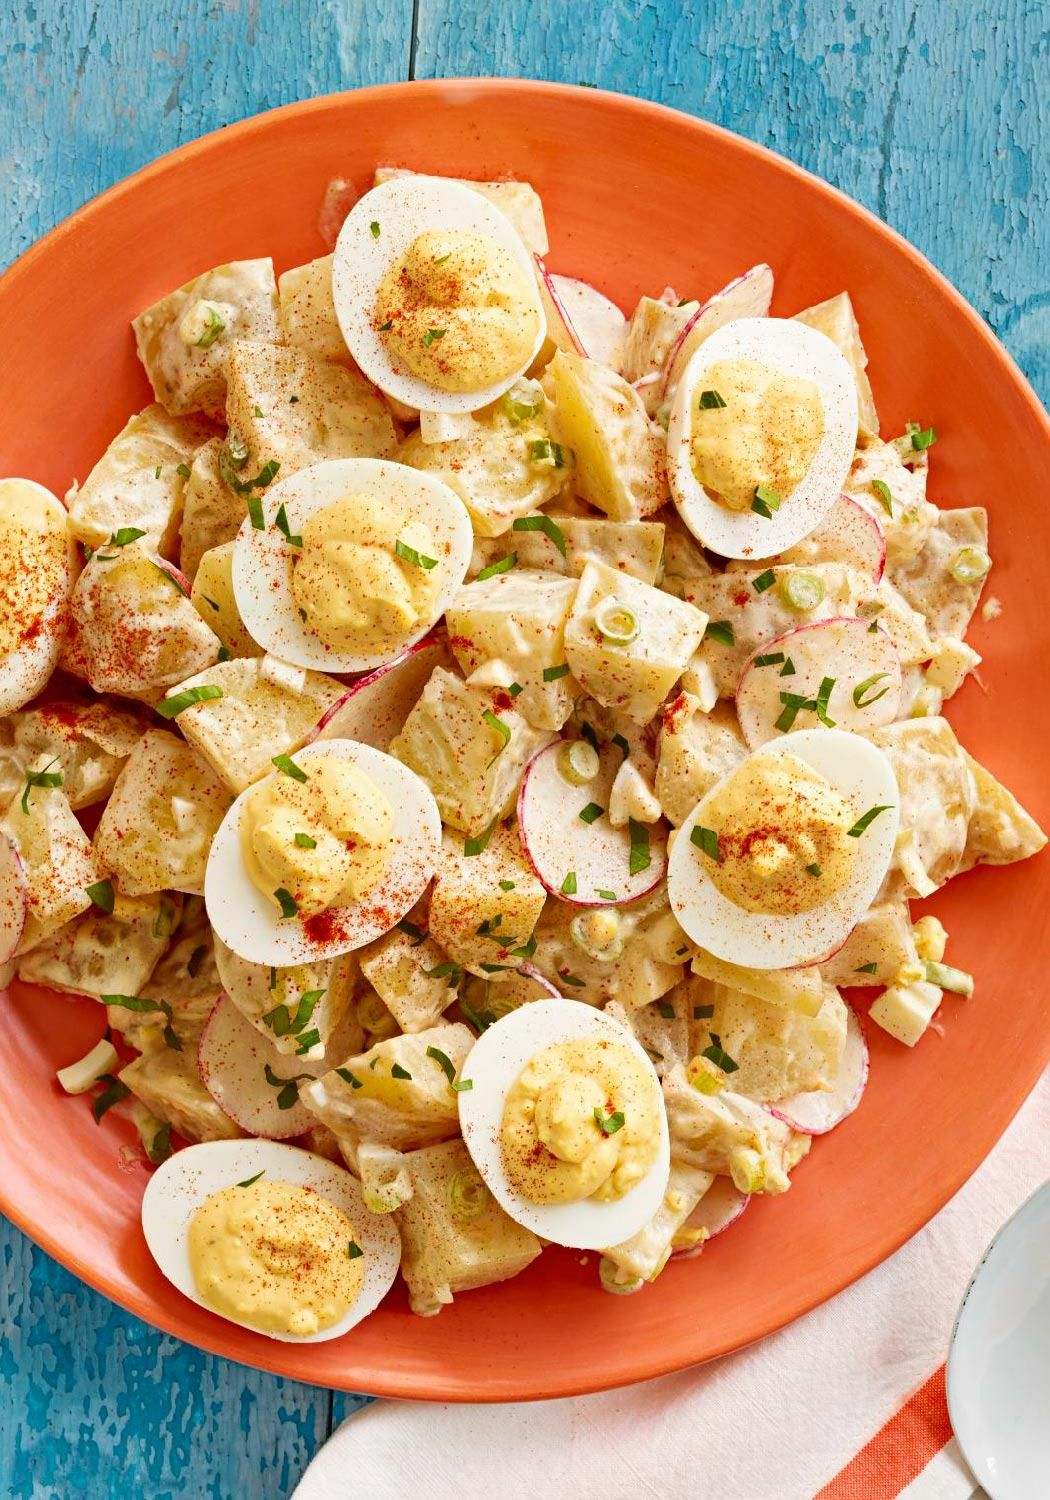 Deviled Egg Potato Salad – We've taken two potluck and picnic favorites—deviled eggs and potato salad—and made one creamy, flavorful salad that's sure to please the crowd.